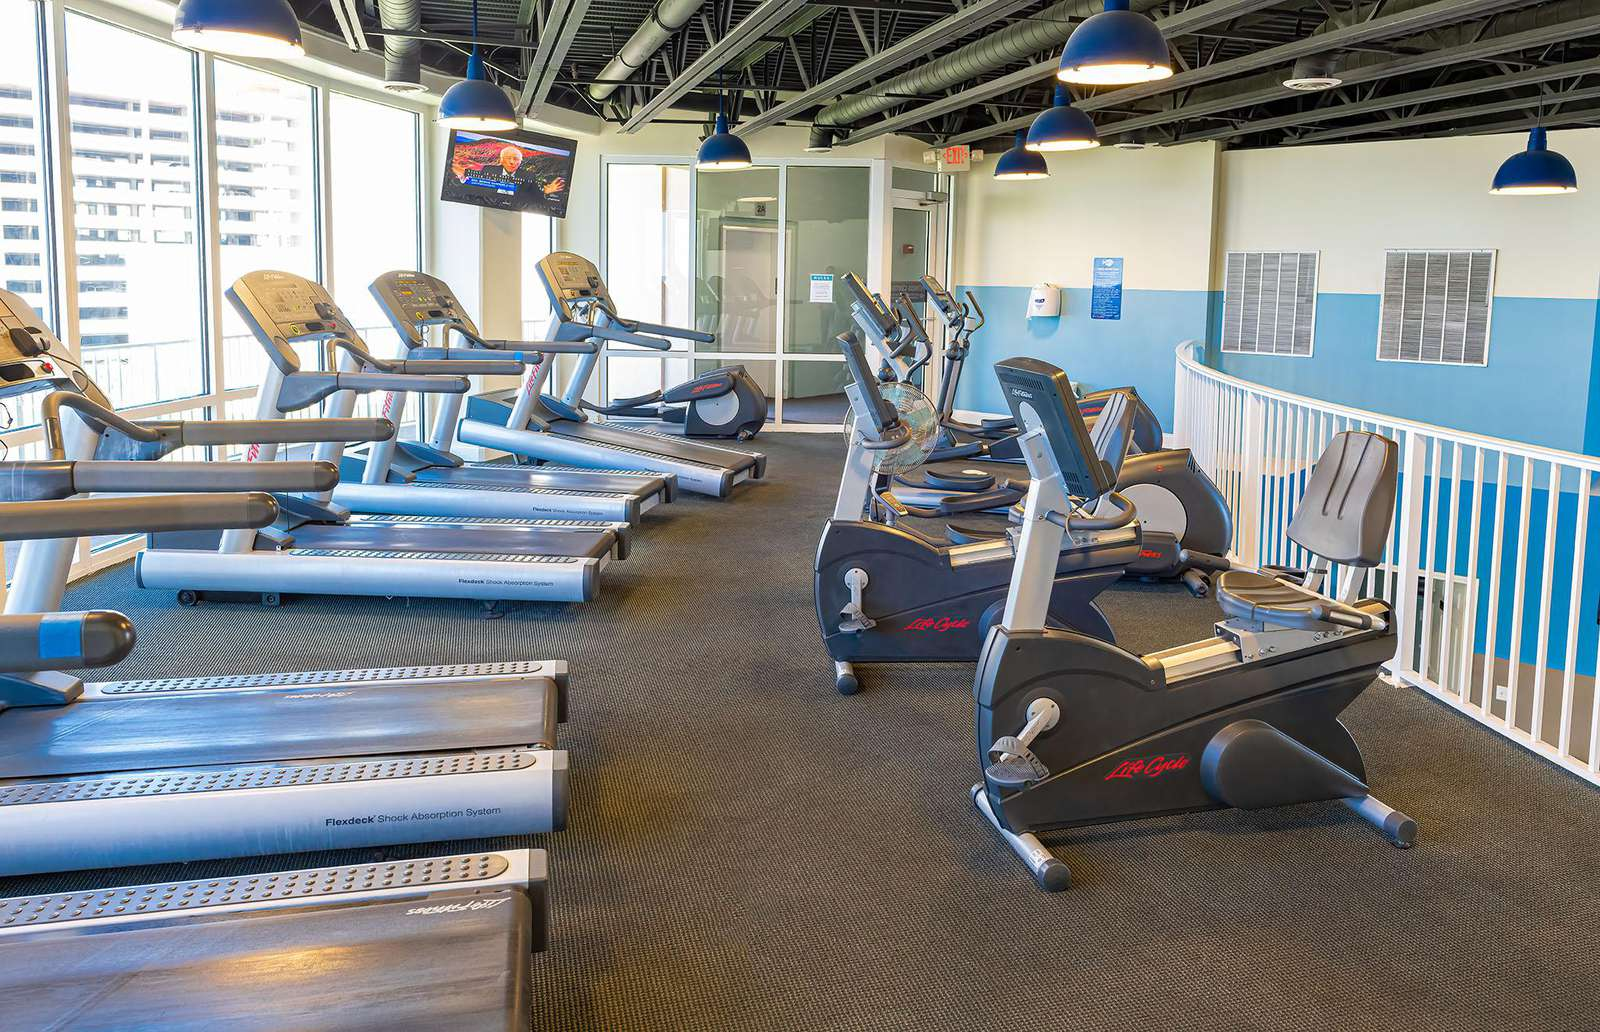 Nicely equipped exercise facility!